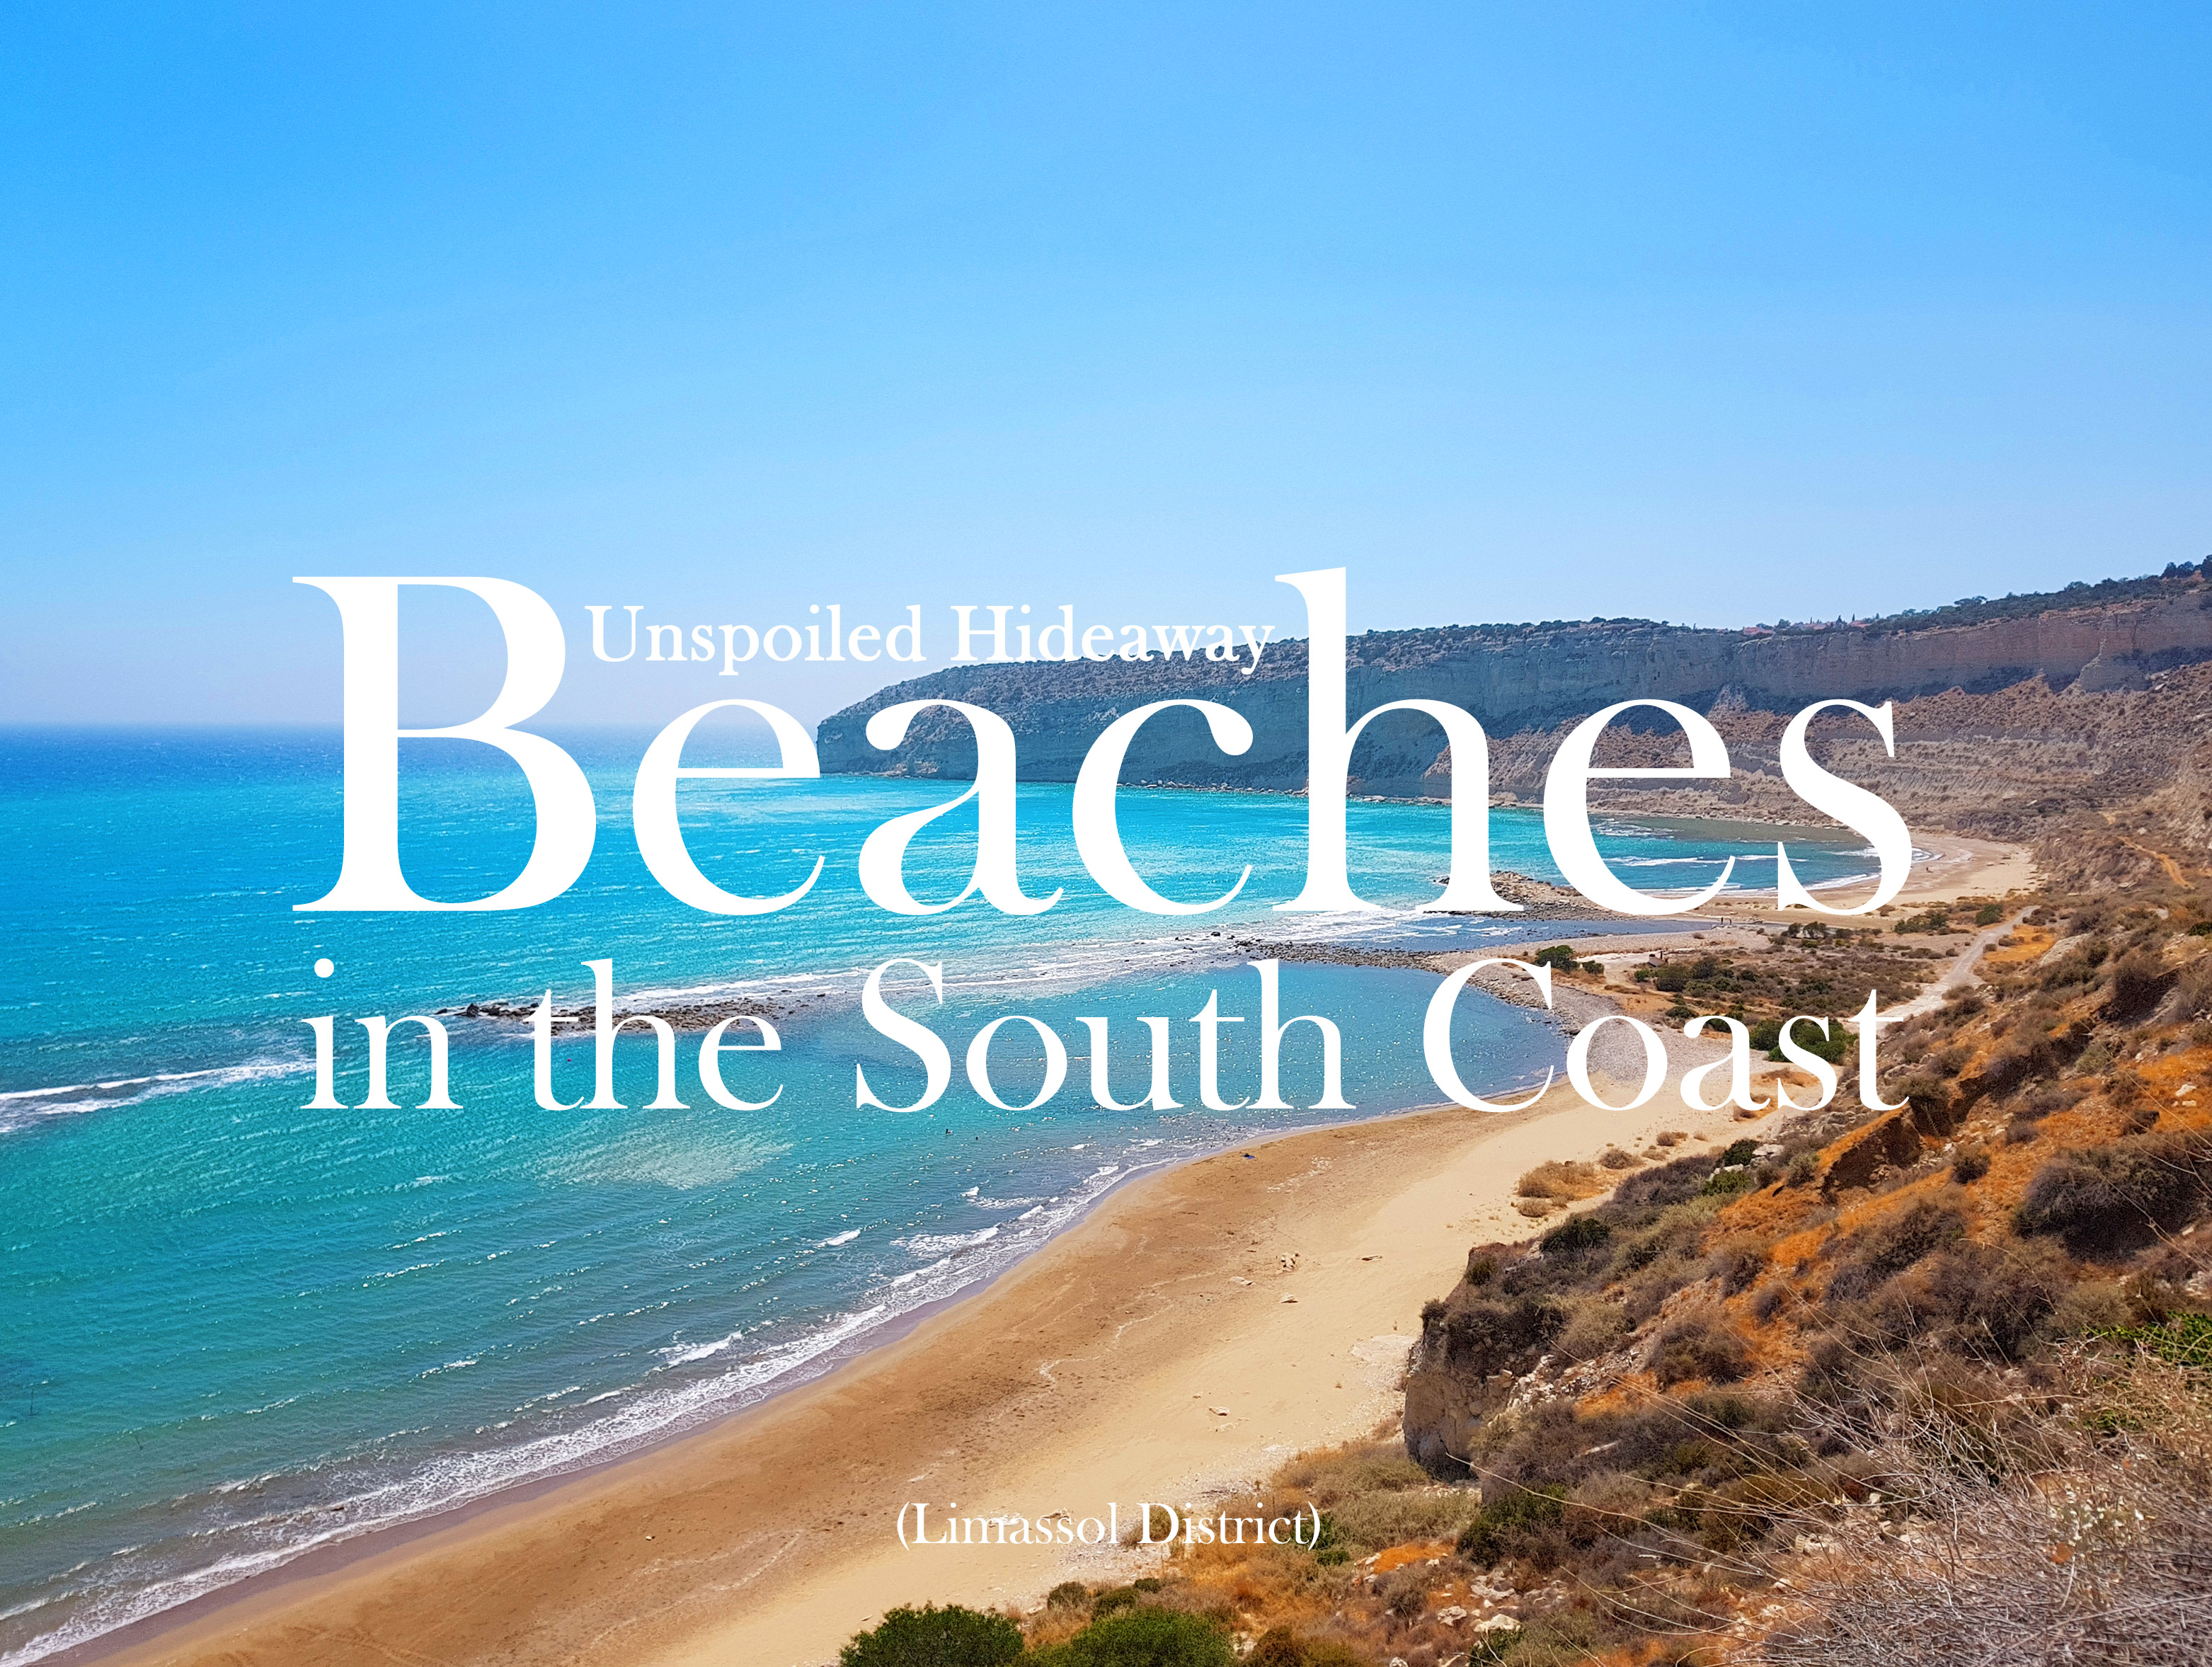 Unspoiled Hideaway Beaches in the South Coast